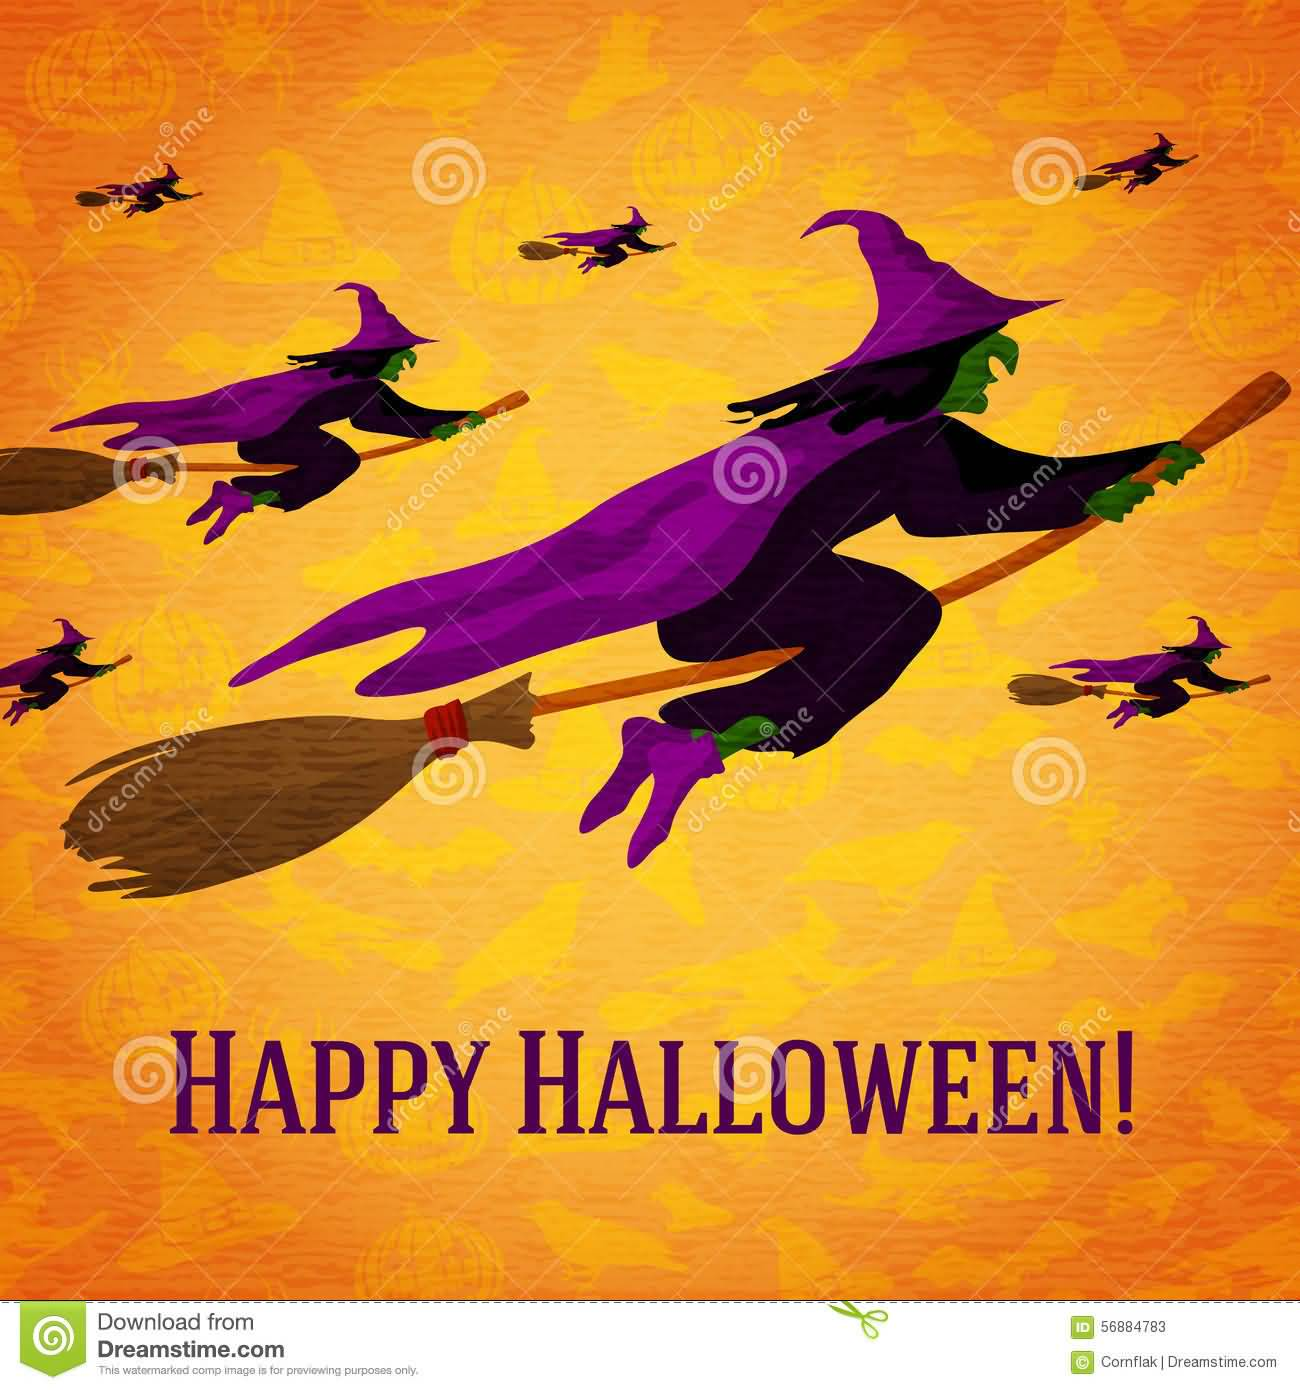 22 Most Beautiful Happy Halloween Greeting Card Images And